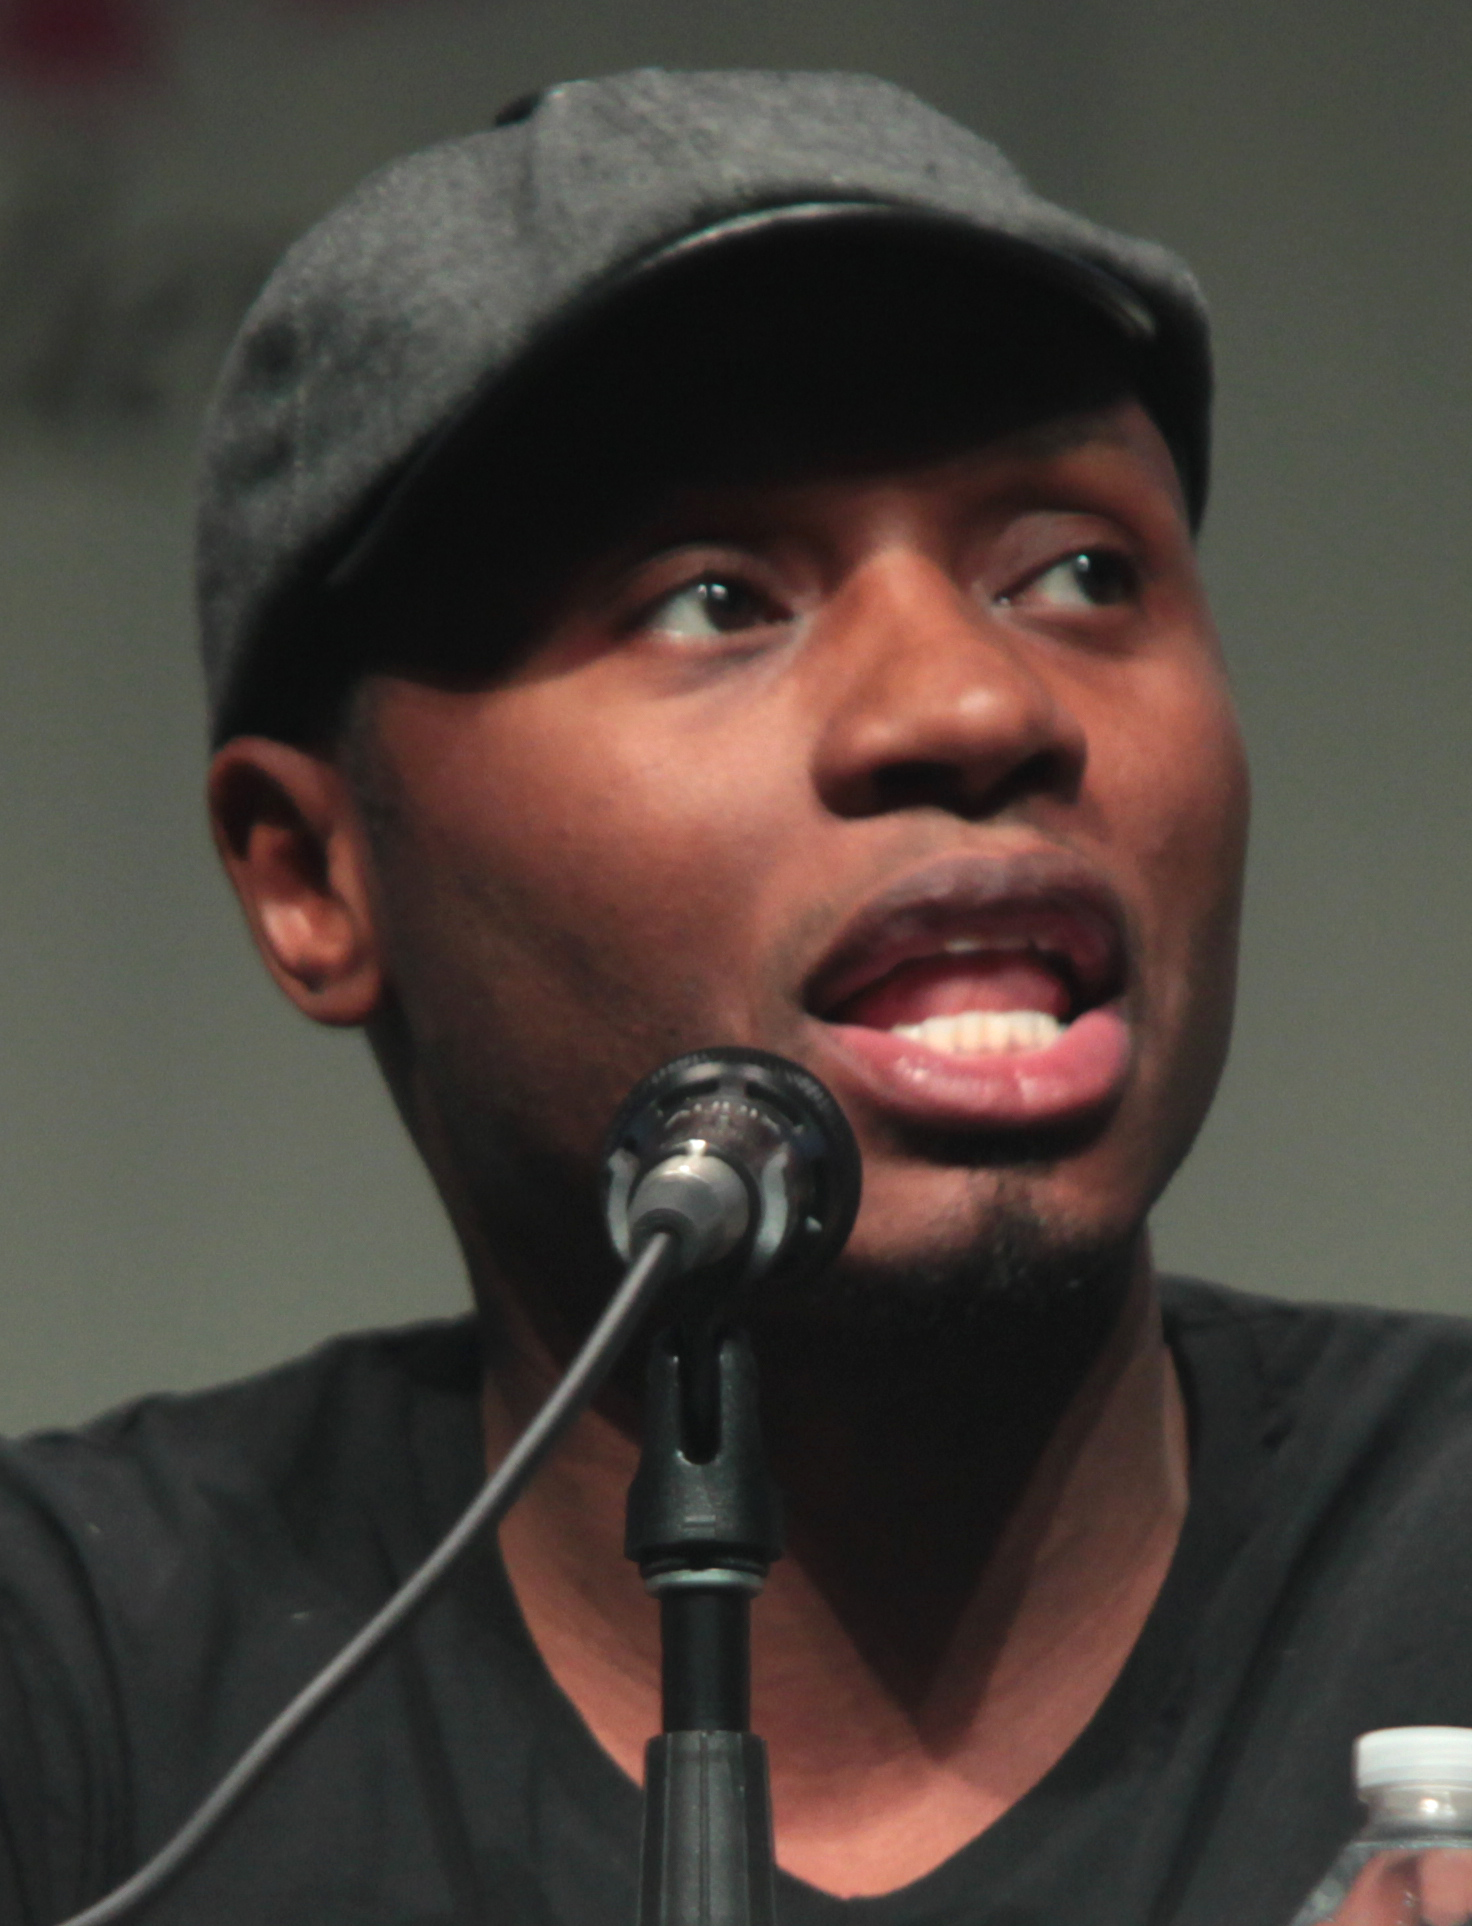 The 39-year old son of father (?) and mother(?) Malcolm Goodwin in 2018 photo. Malcolm Goodwin earned a  million dollar salary - leaving the net worth at 4 million in 2018